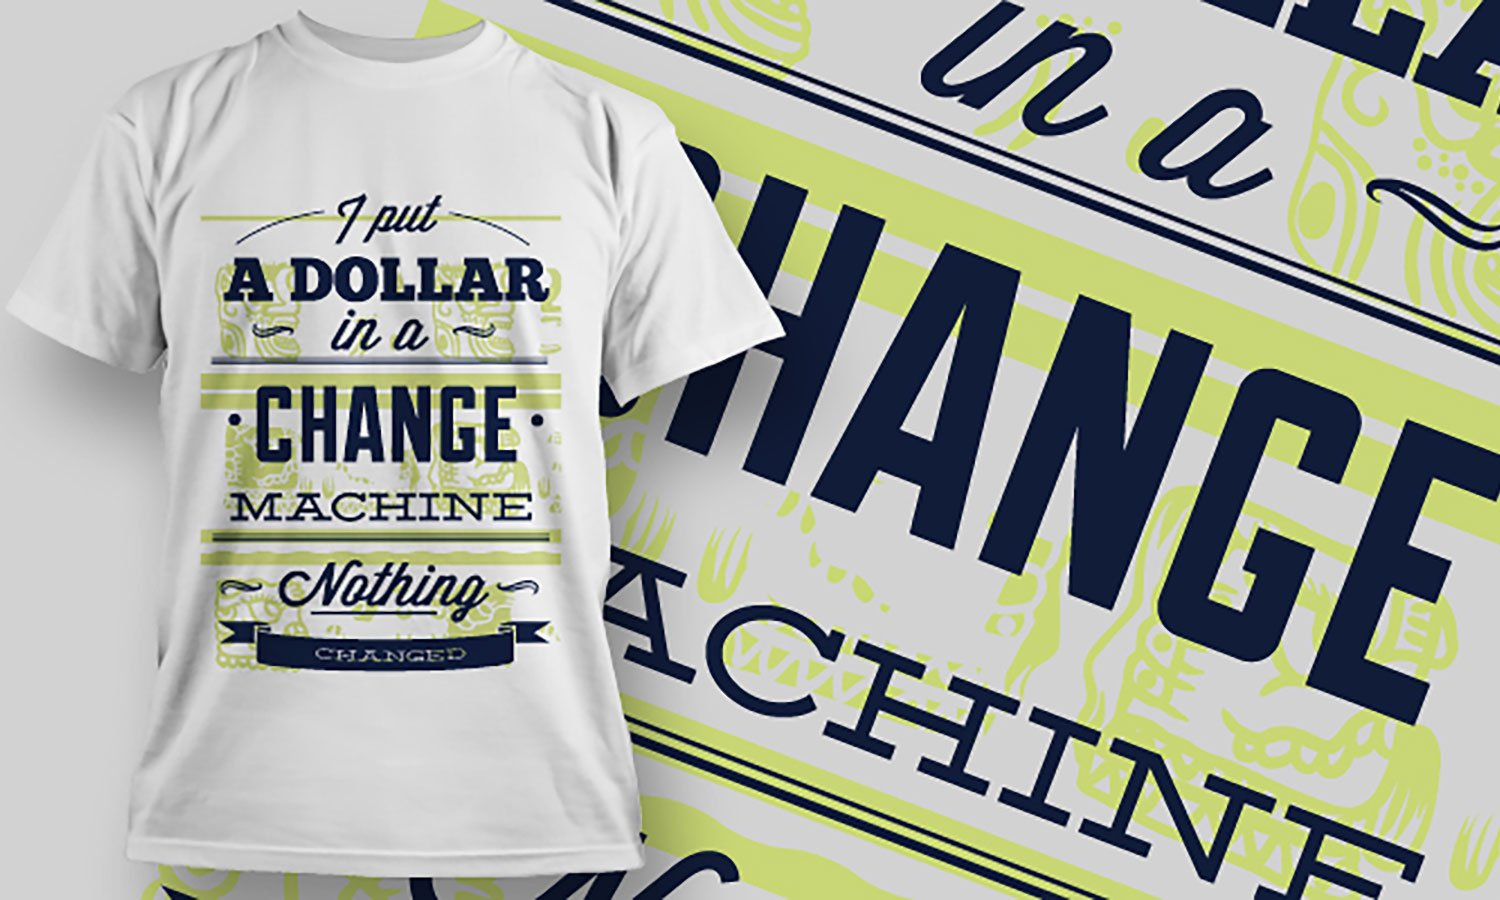 Dollar - Printed T-Shirt for Men, Women and Kids - TS376